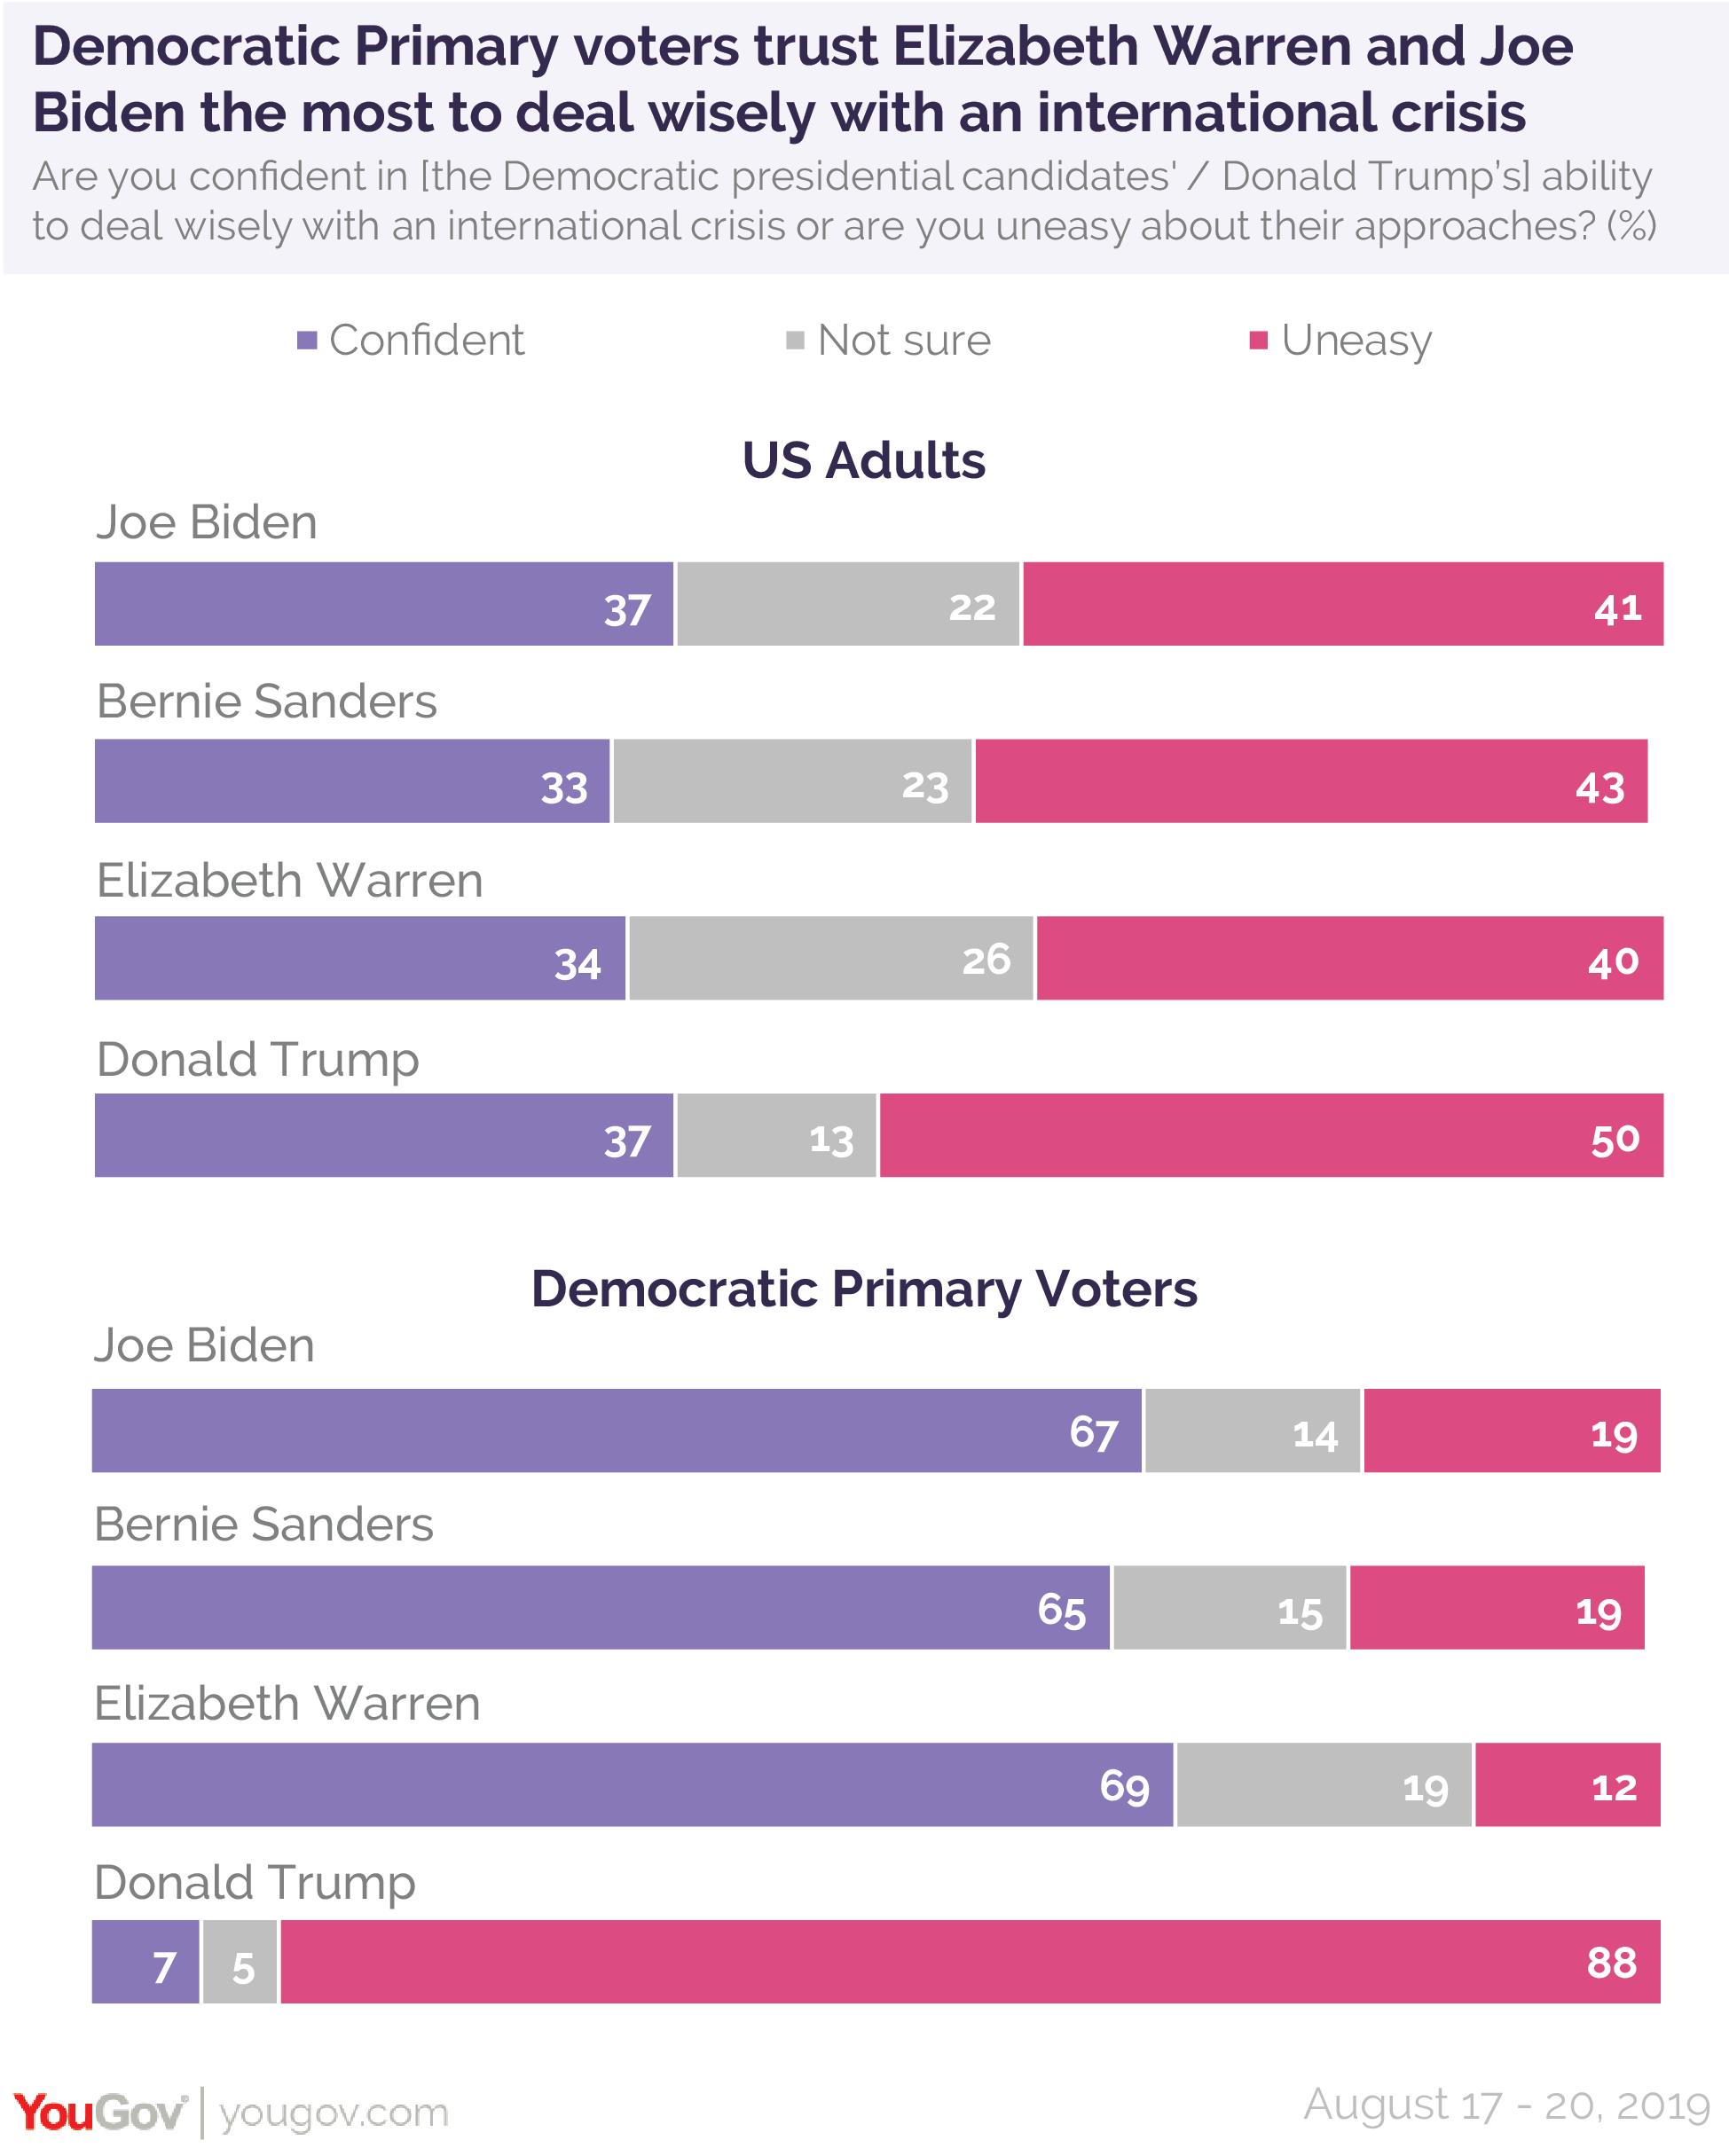 Democratic Primary voters trust Elizabeth Warren and Joe Biden the most to deal wisely with an international crisis